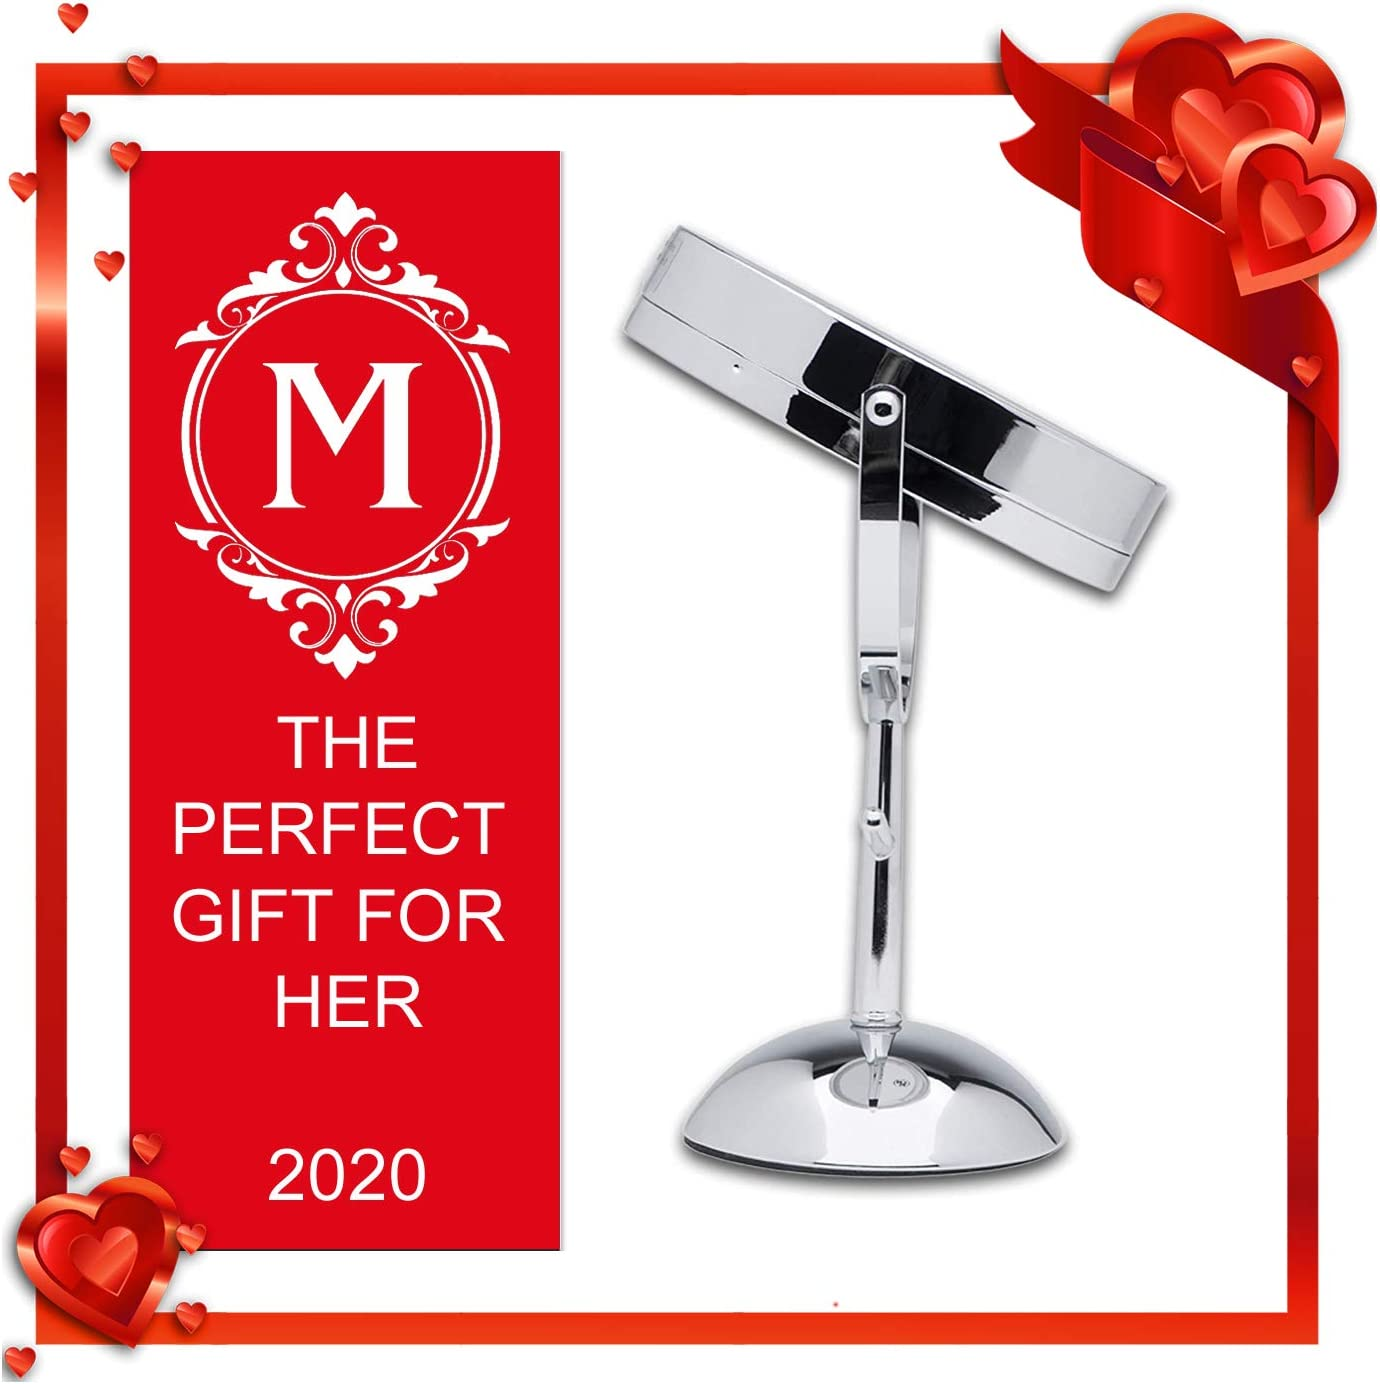 Espejo con luz para maquillaje Mirrorvana 7-Inch Dual-Sided Magnifying LED Lighted Vanity Makeup Mirror with Jewelry Hooks 1X and 5X Magnification